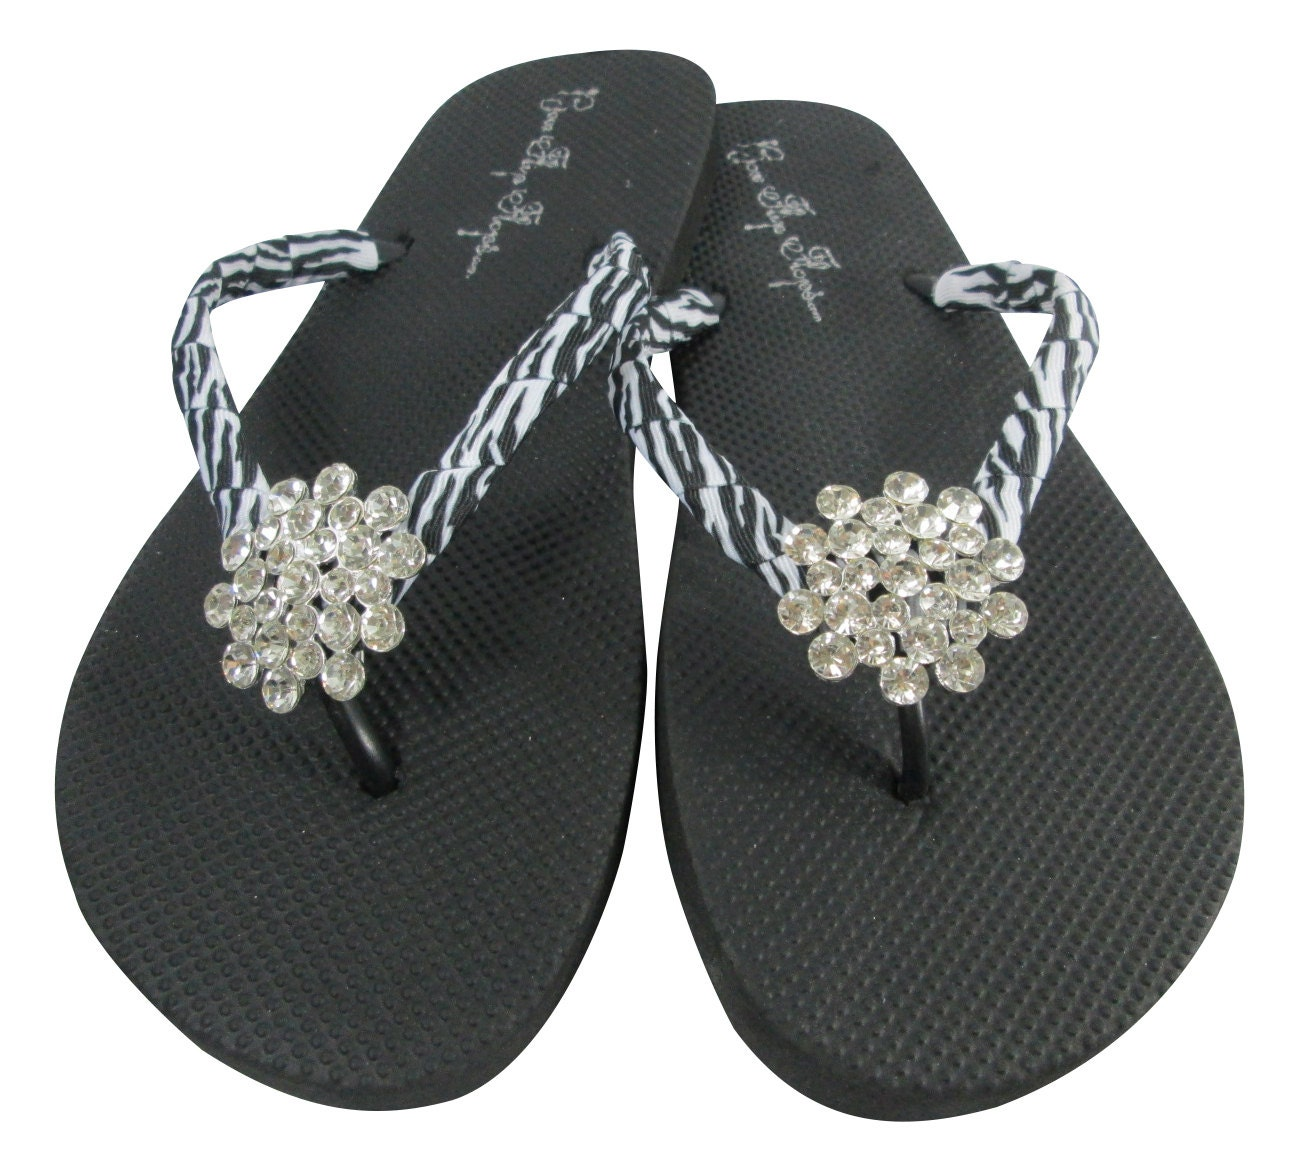 65a72590830b Rhinestone Flip Flops with Zebra Bling jewels on flat black